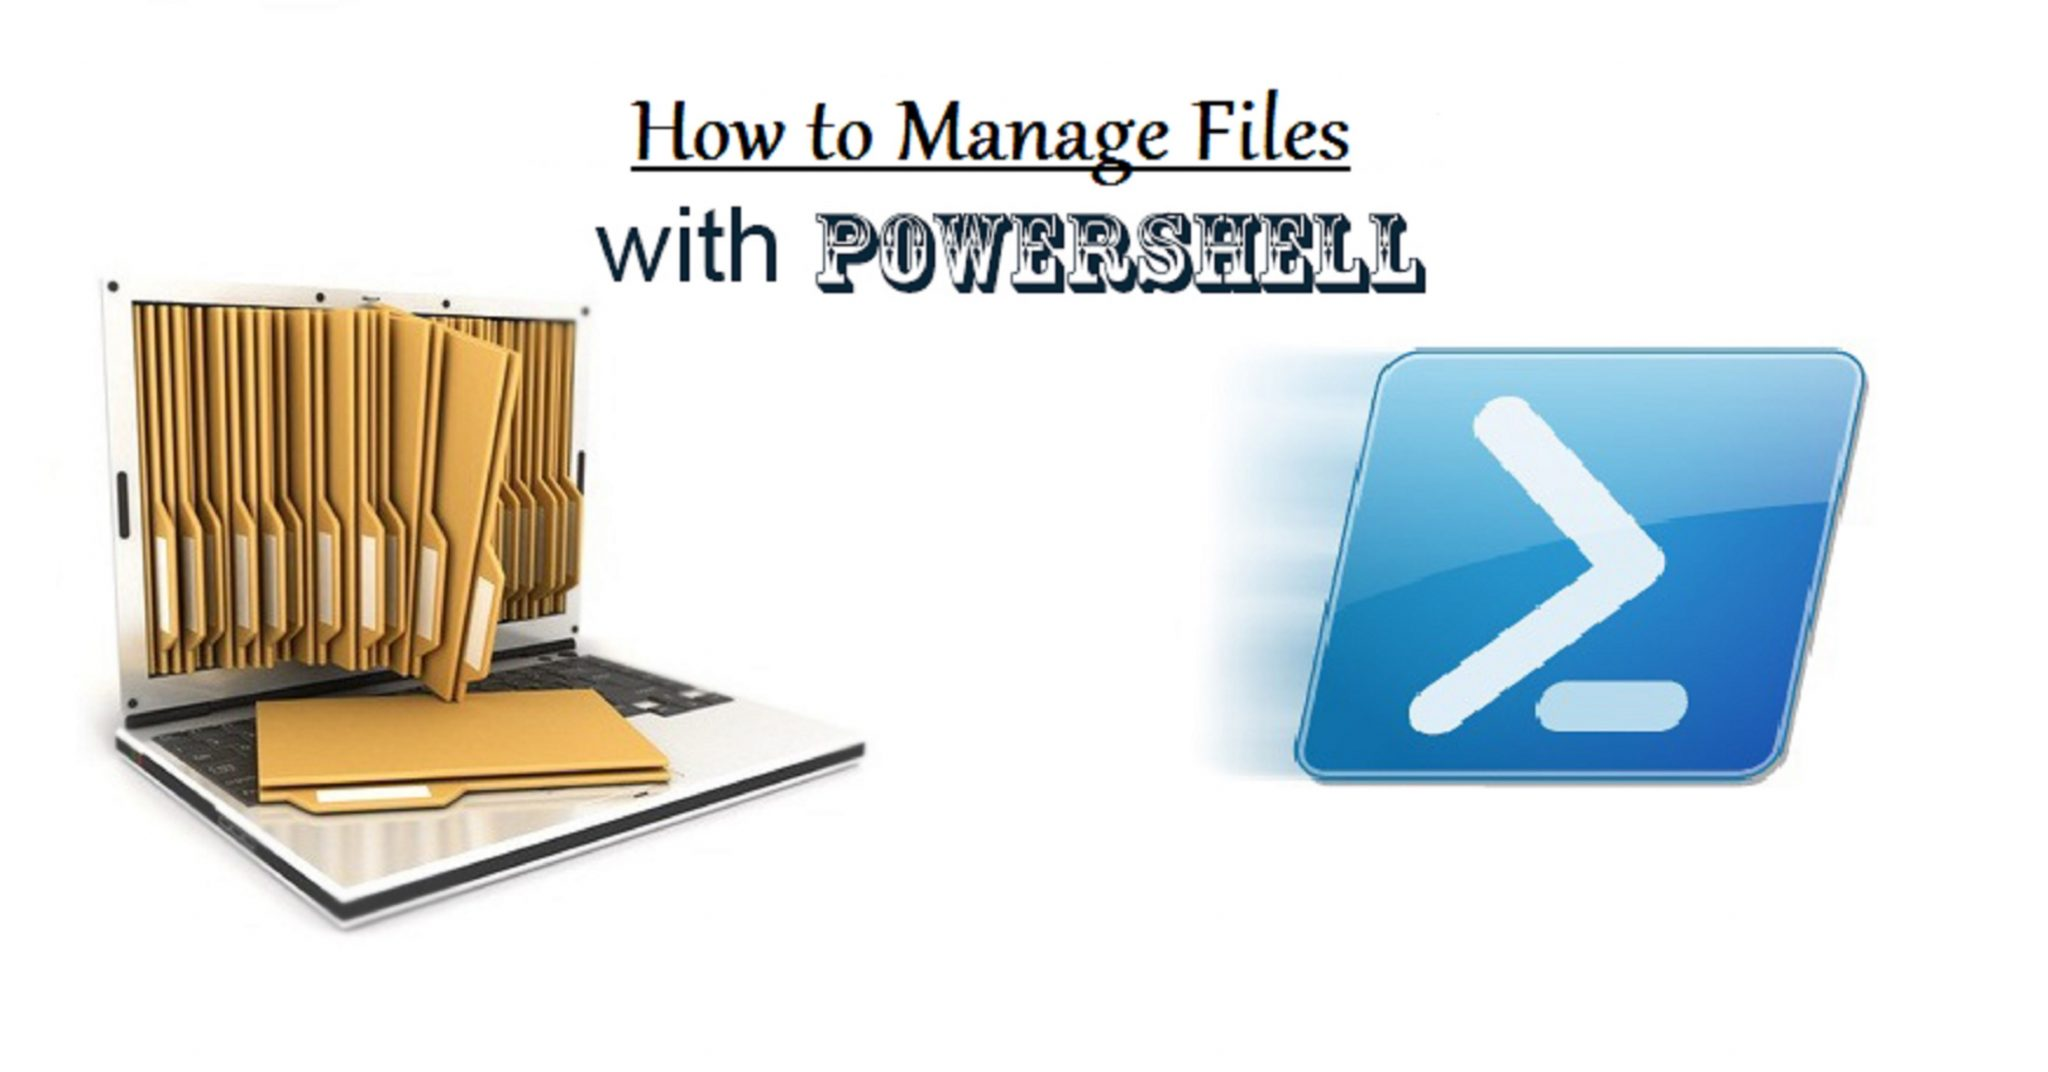 Manage Files with PowerShell